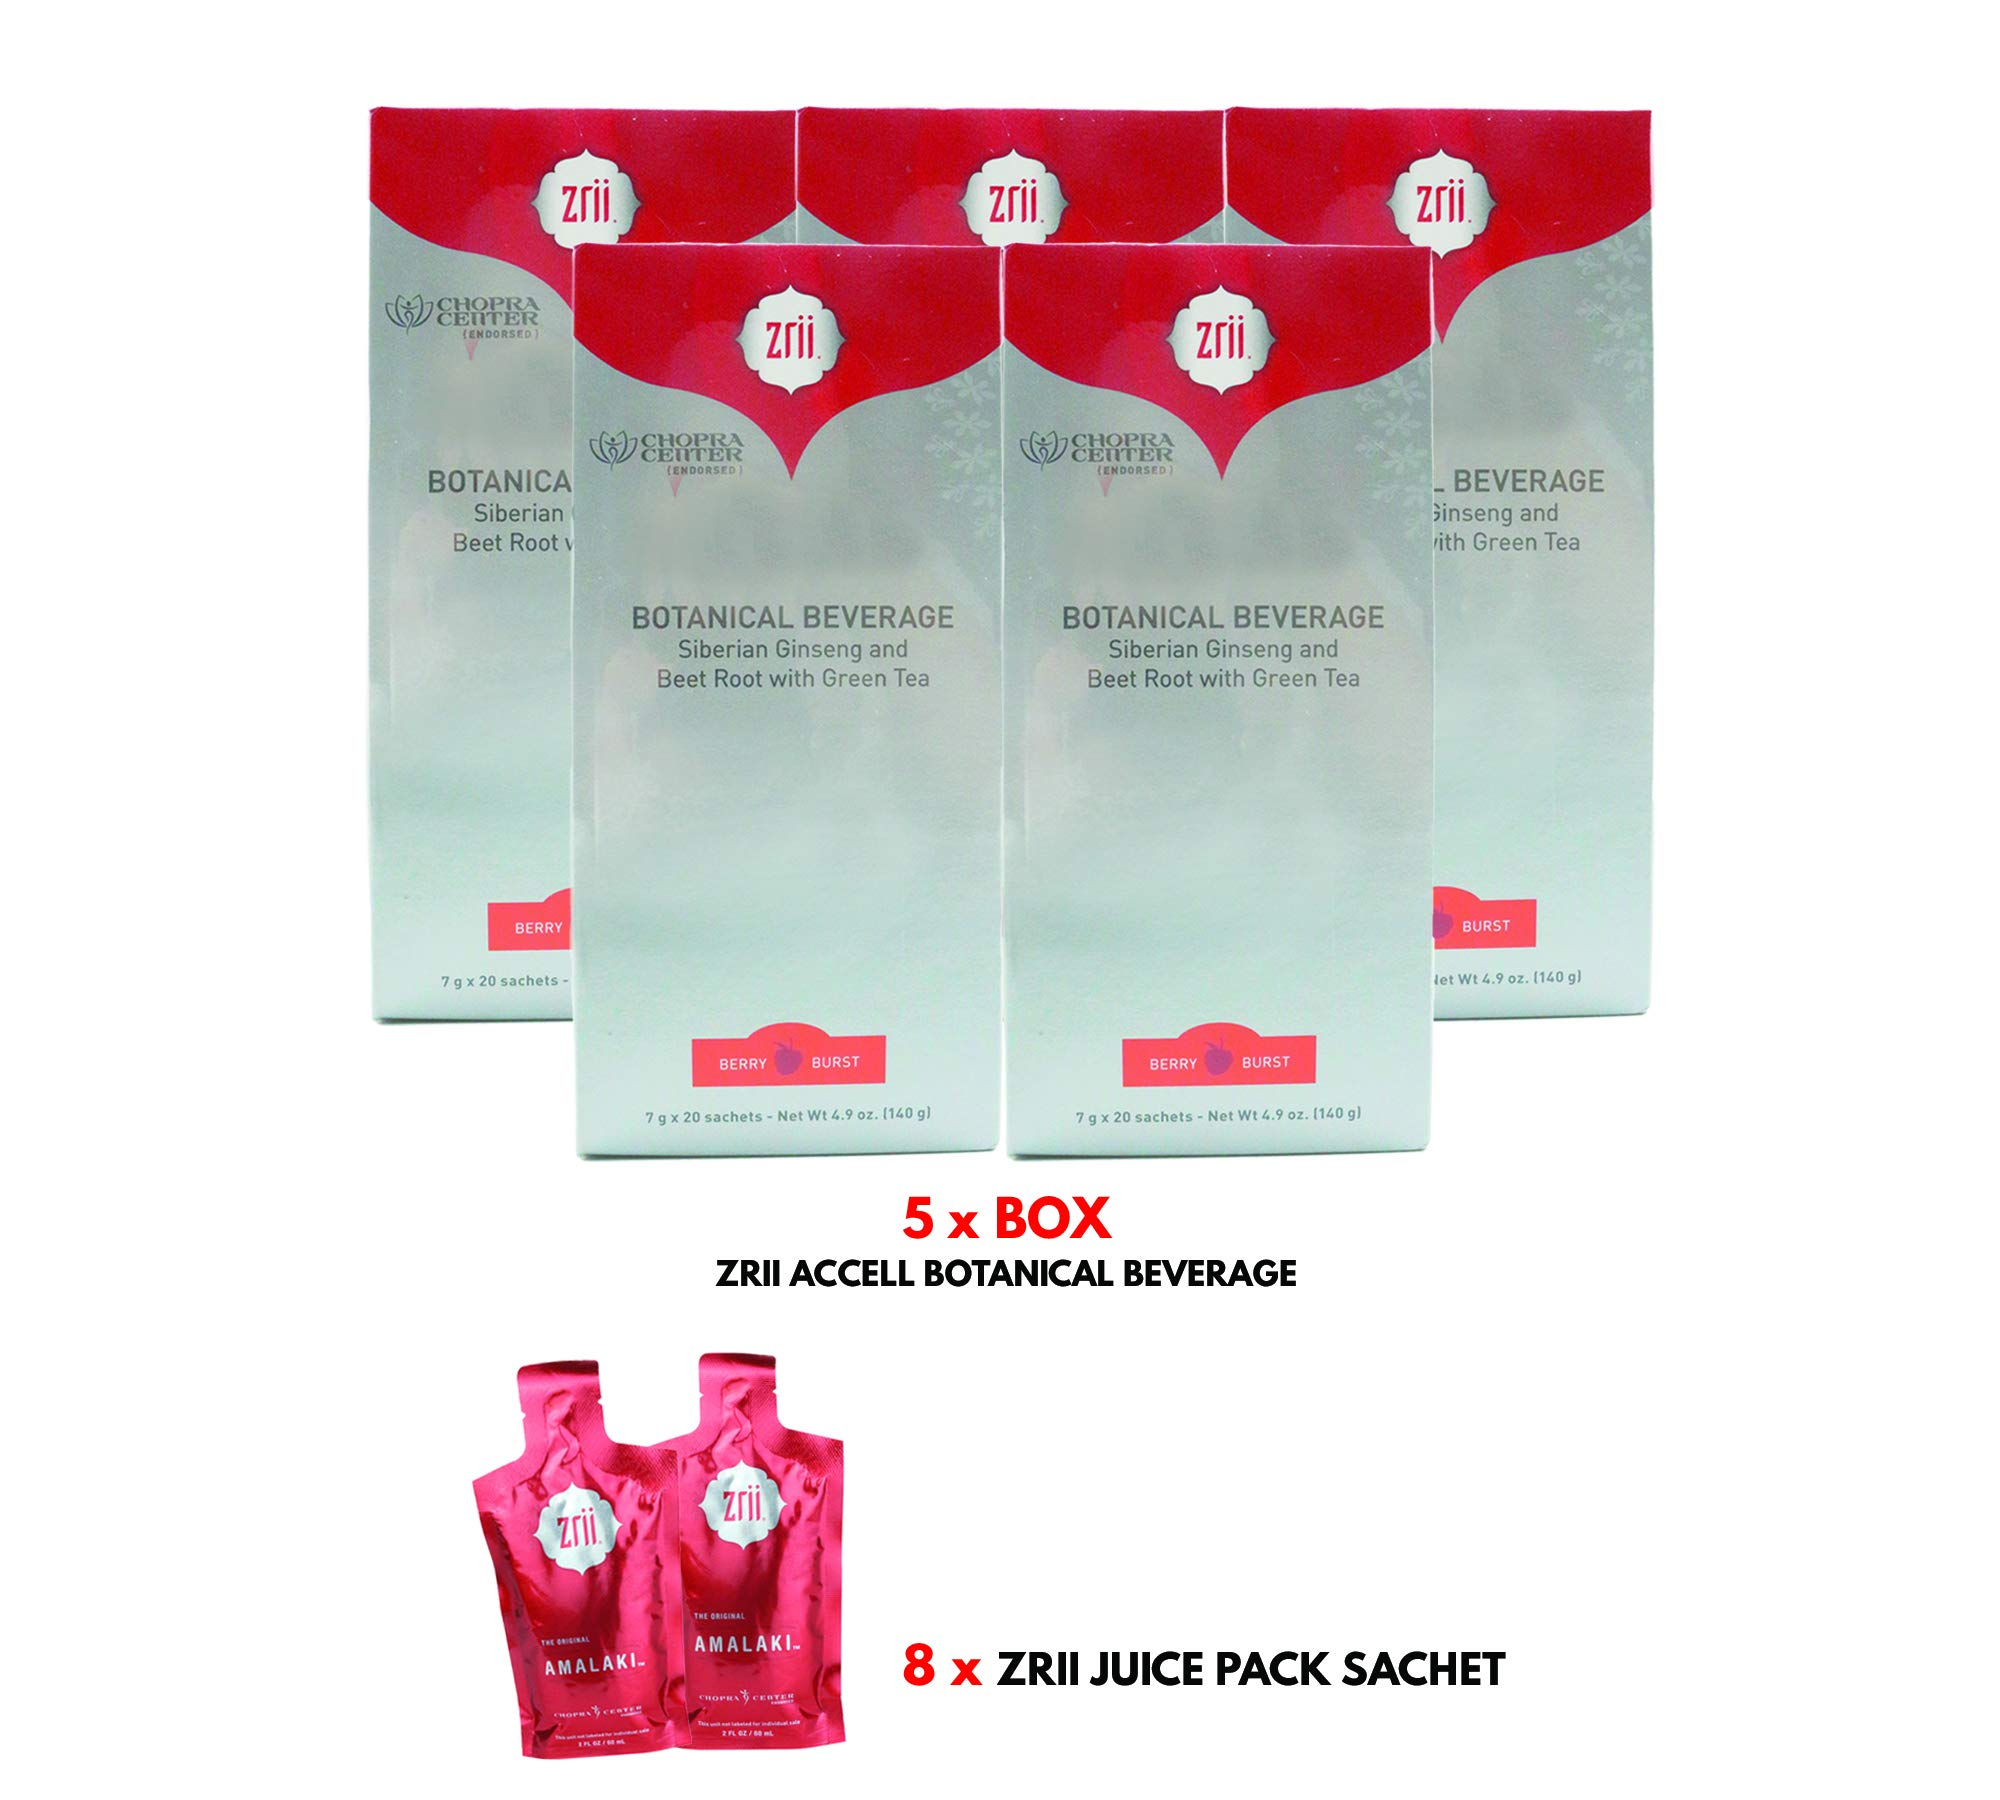 Zrii Accell Botanical Beverage (Green Tea Formula) x 5 Boxes with Free Gift + Free Shipping